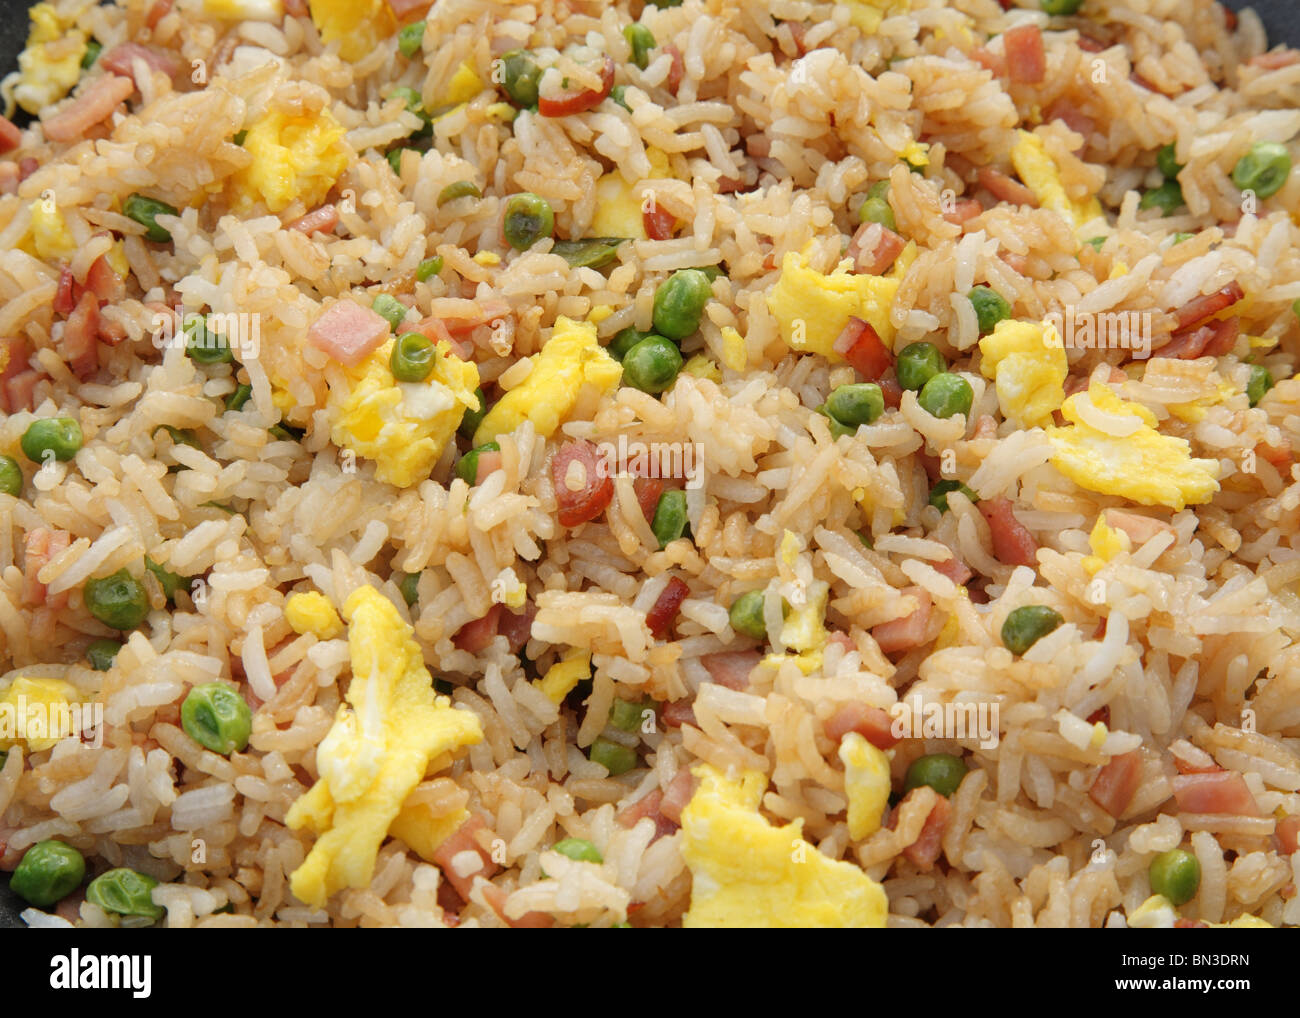 close-up detail of delicious ham fried rice with egg - Stock Image